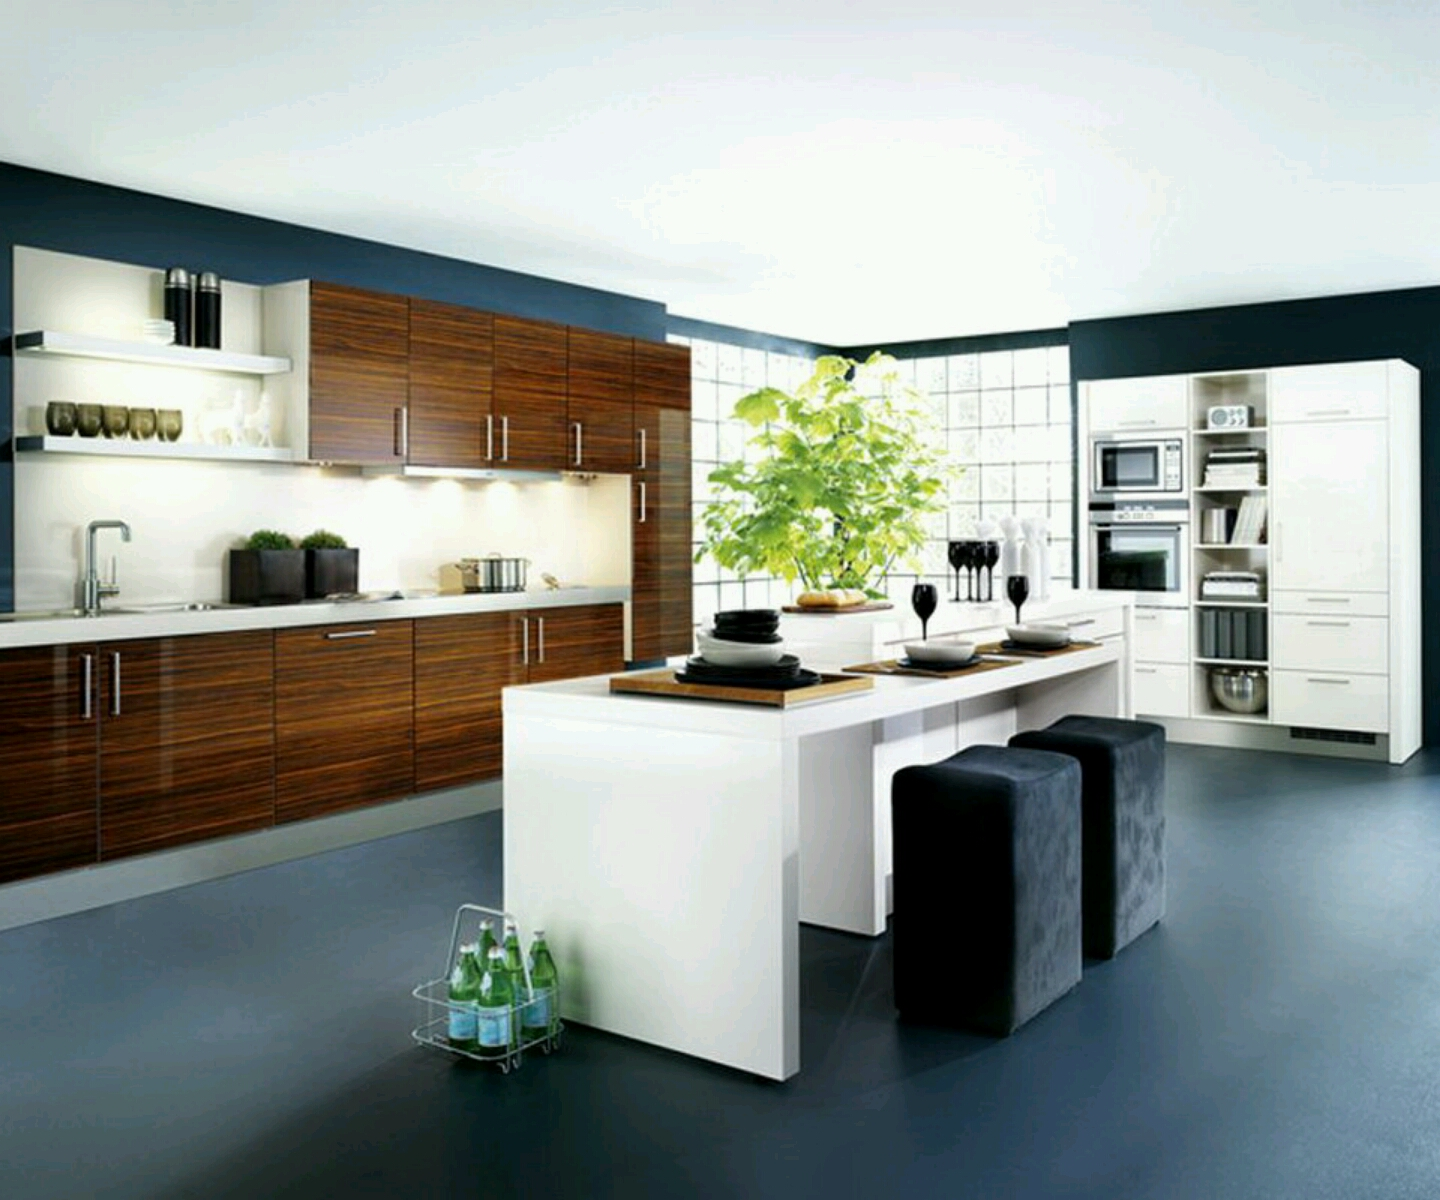 new home designs latest kitchen cabinets designs modern On modern kitchen ideas